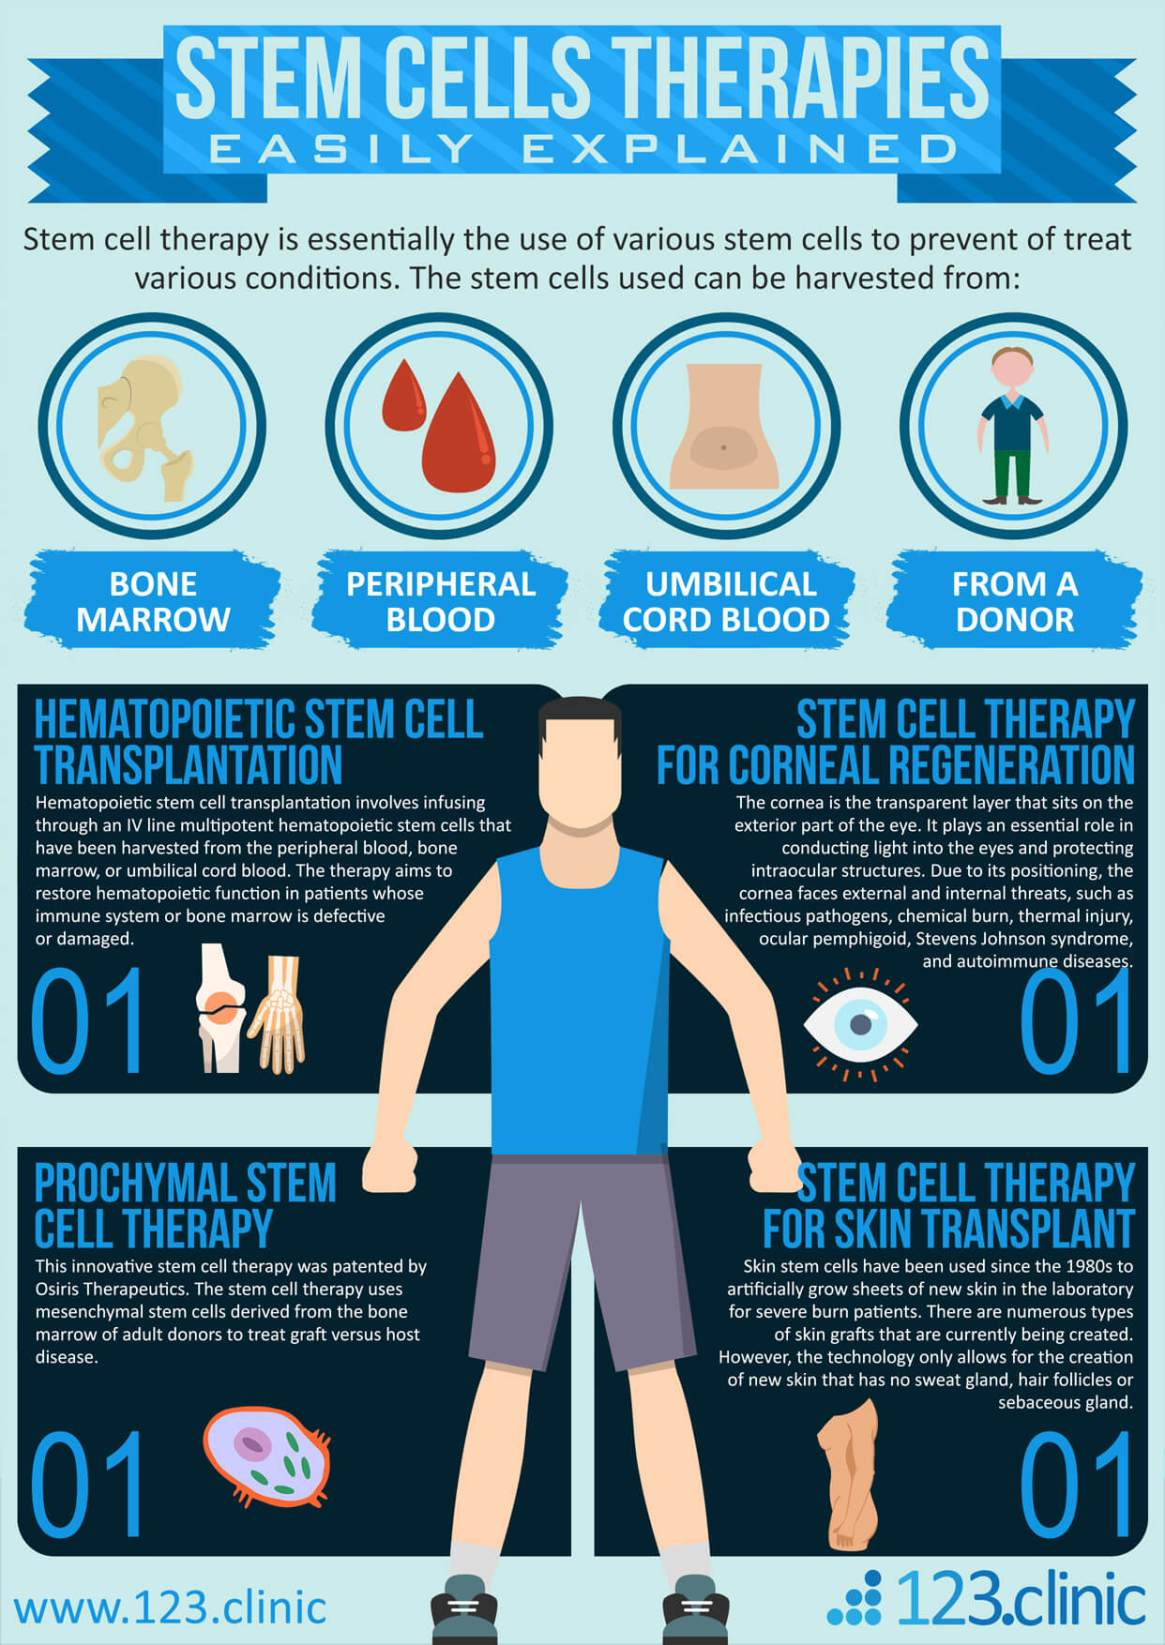 Stem Cells Therapies Brief Overview